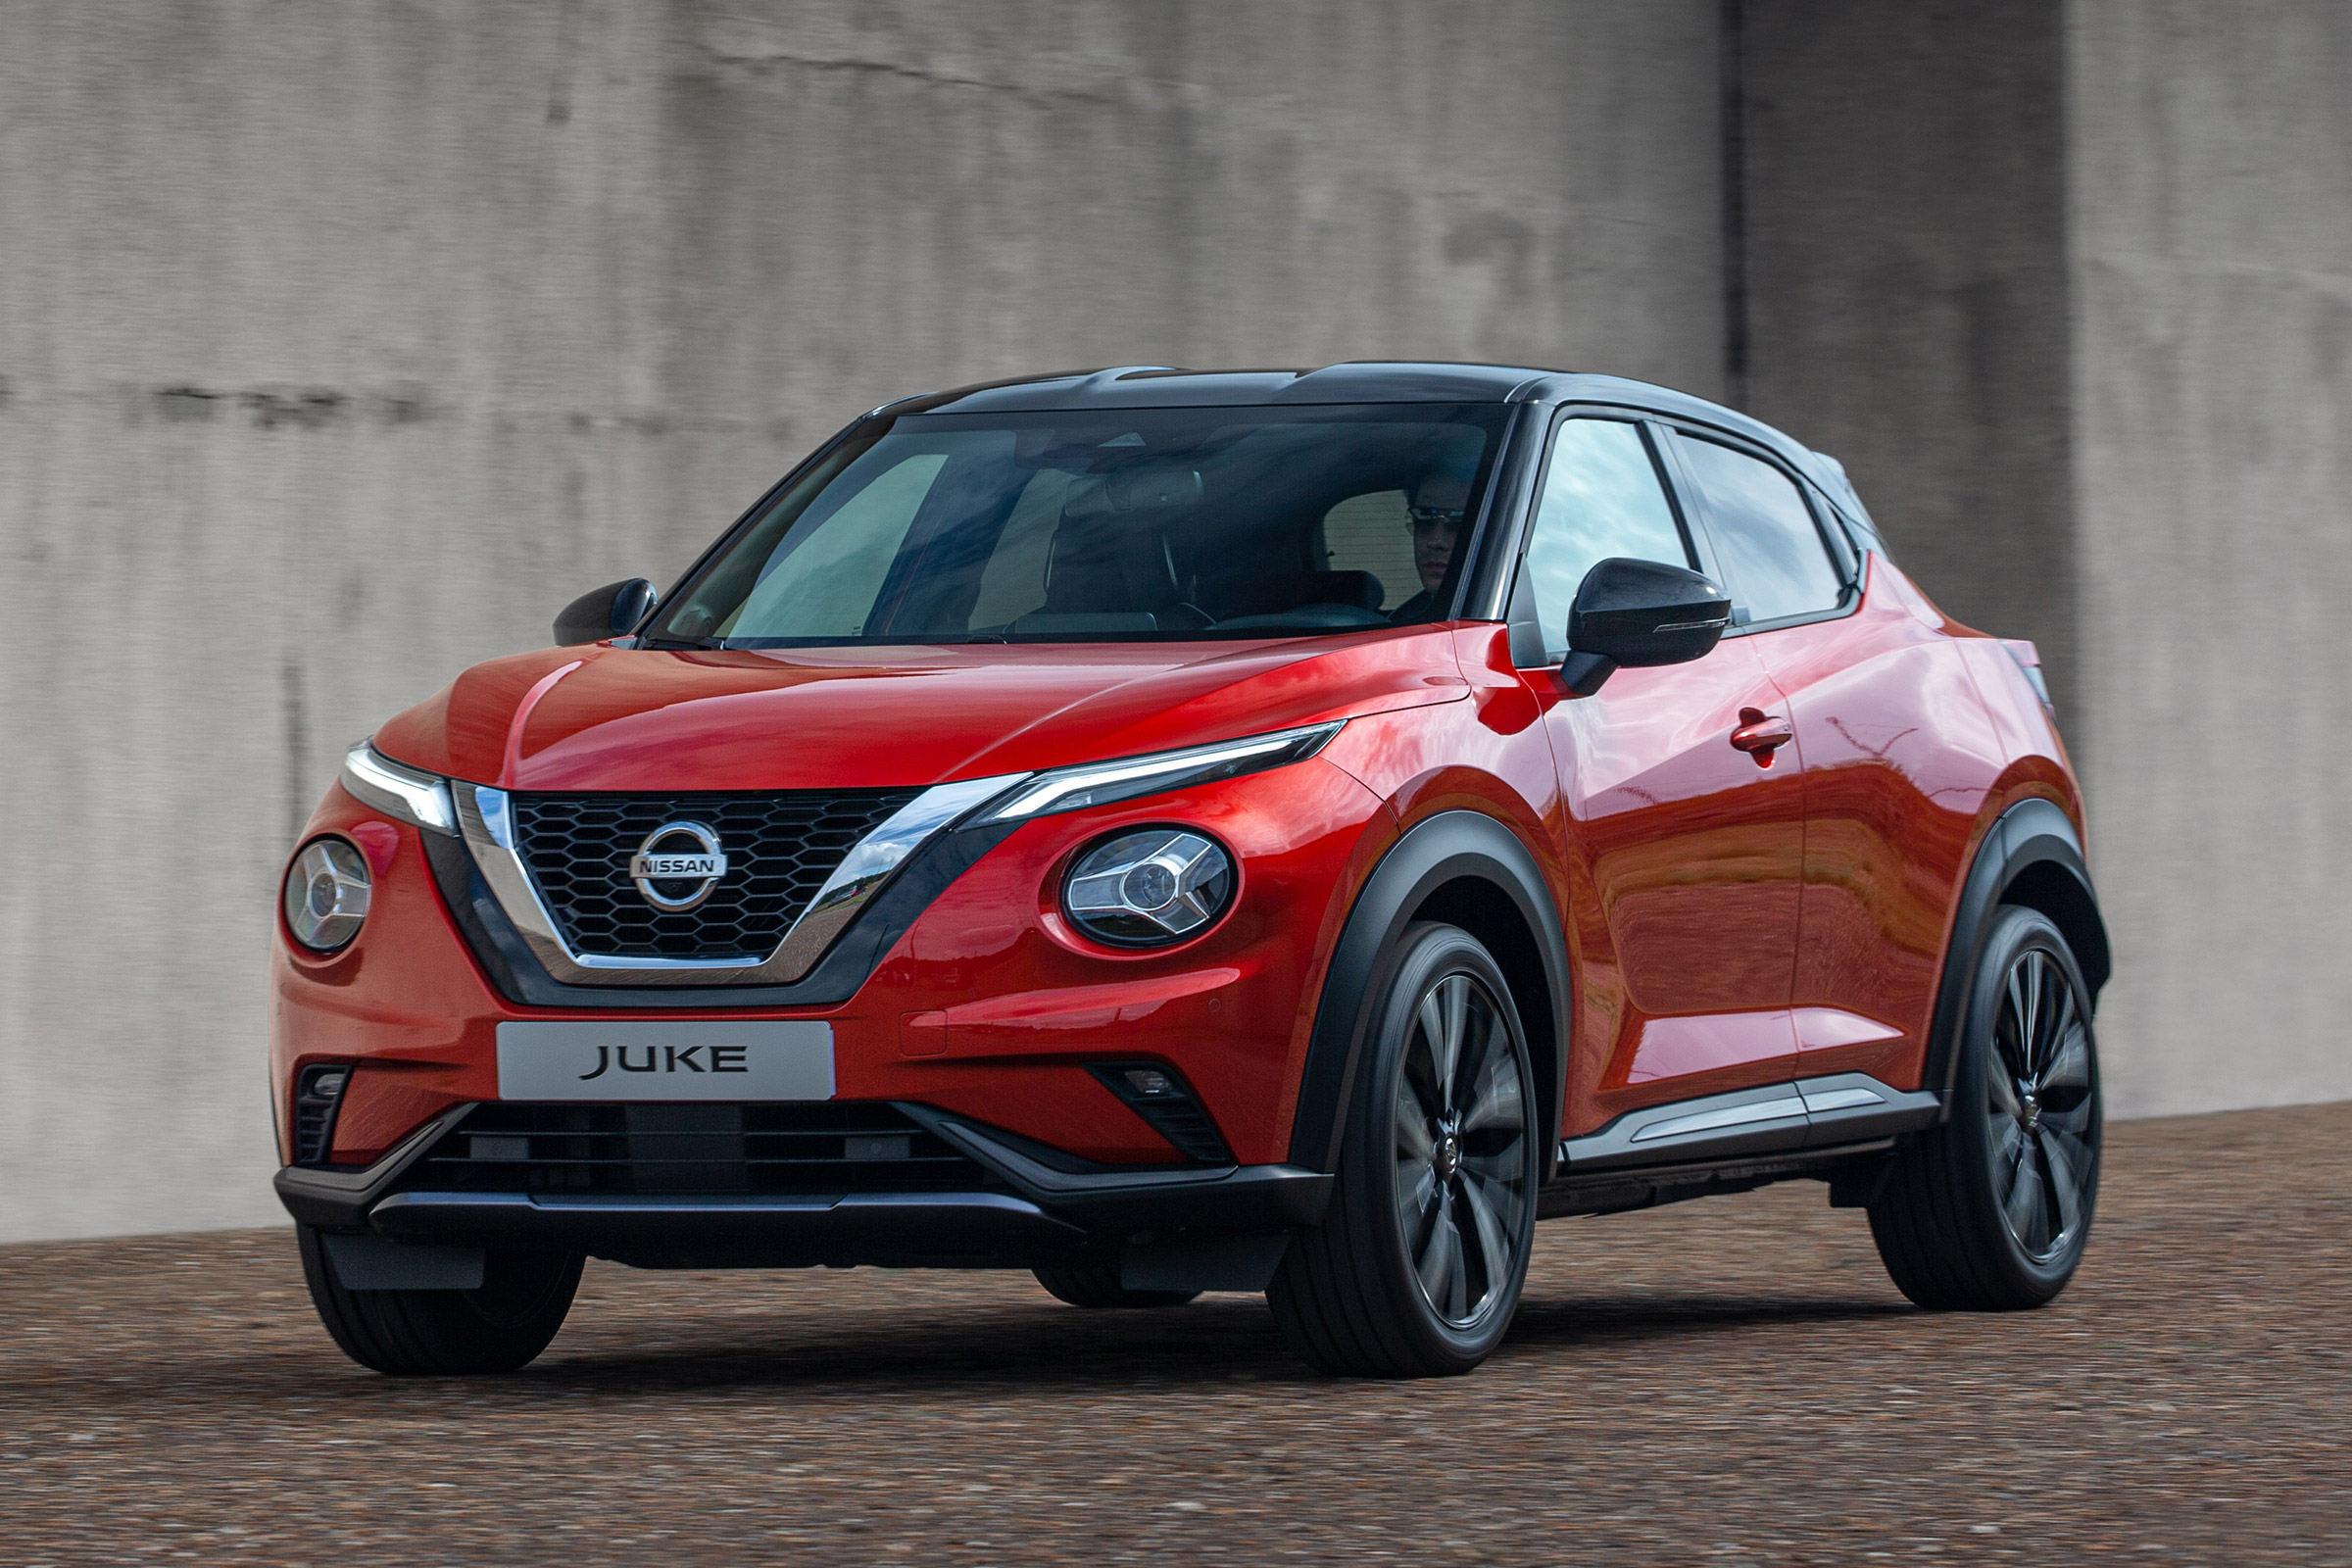 New 2019 Nissan Juke to cost from £17,395 | Auto Express